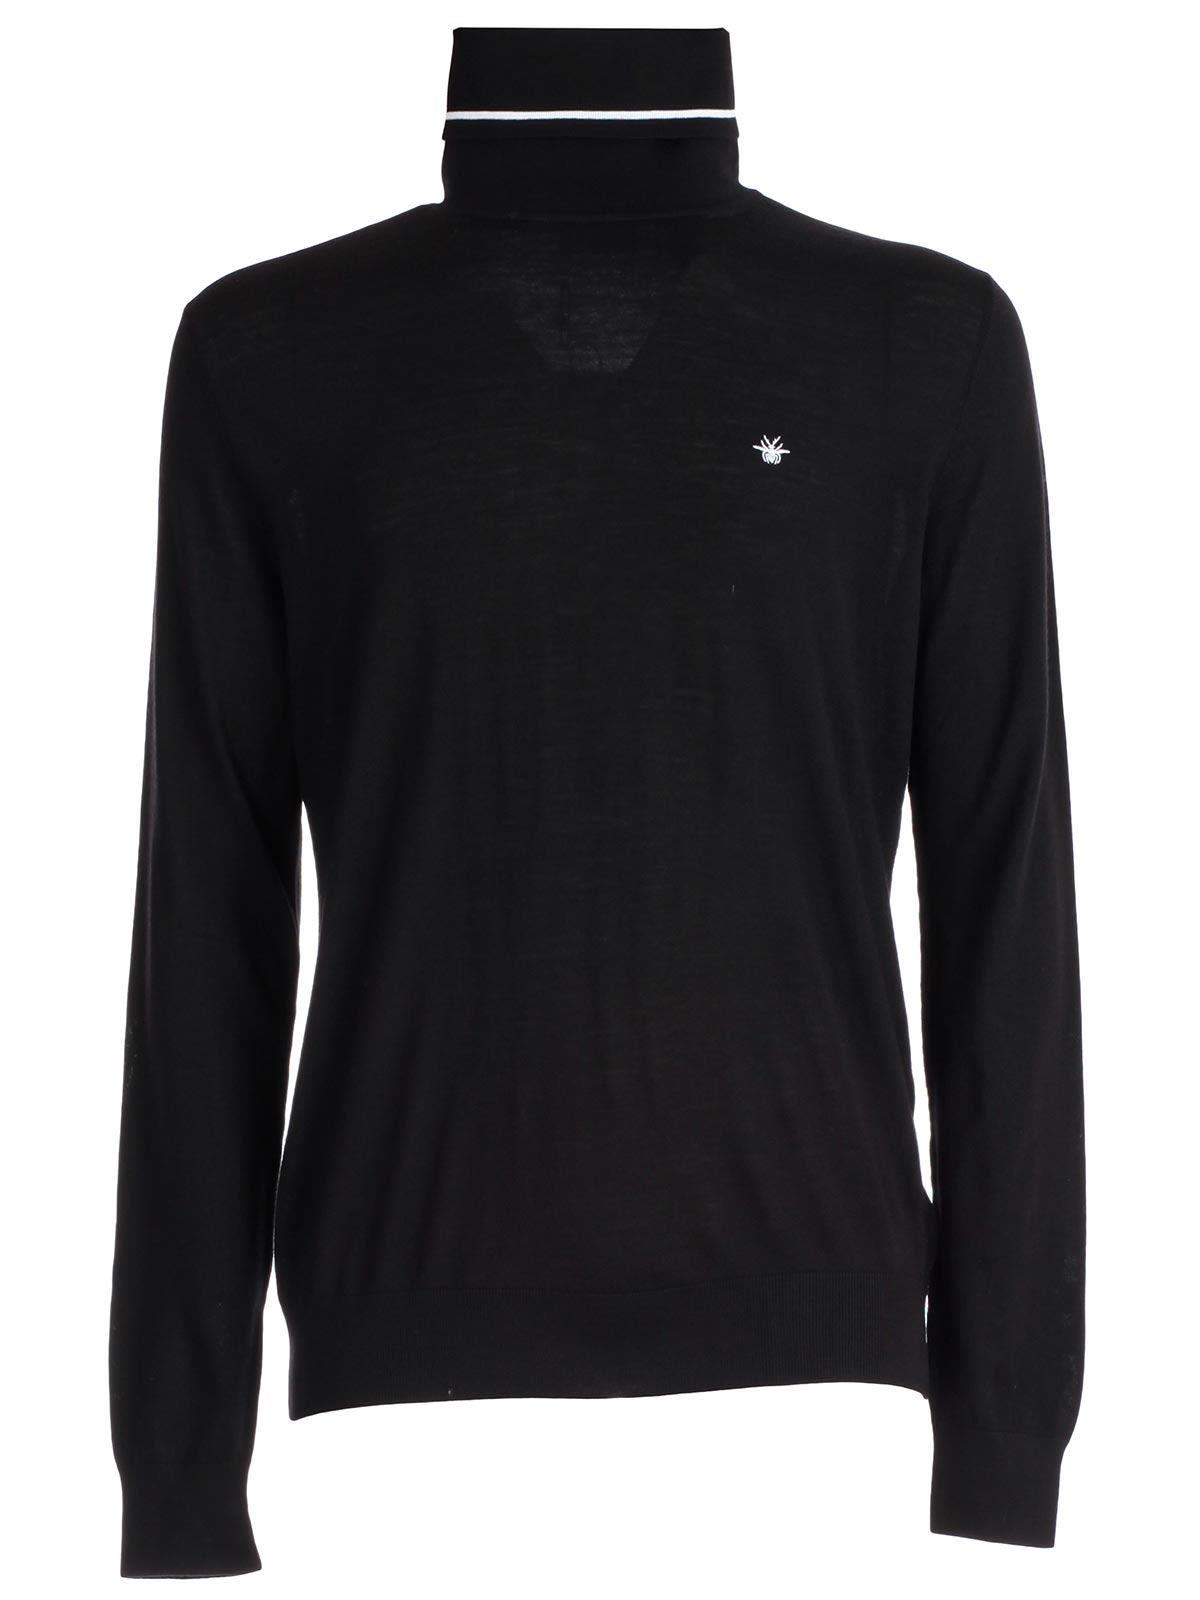 Dior Homme Logo Embroidered Sweater In Black